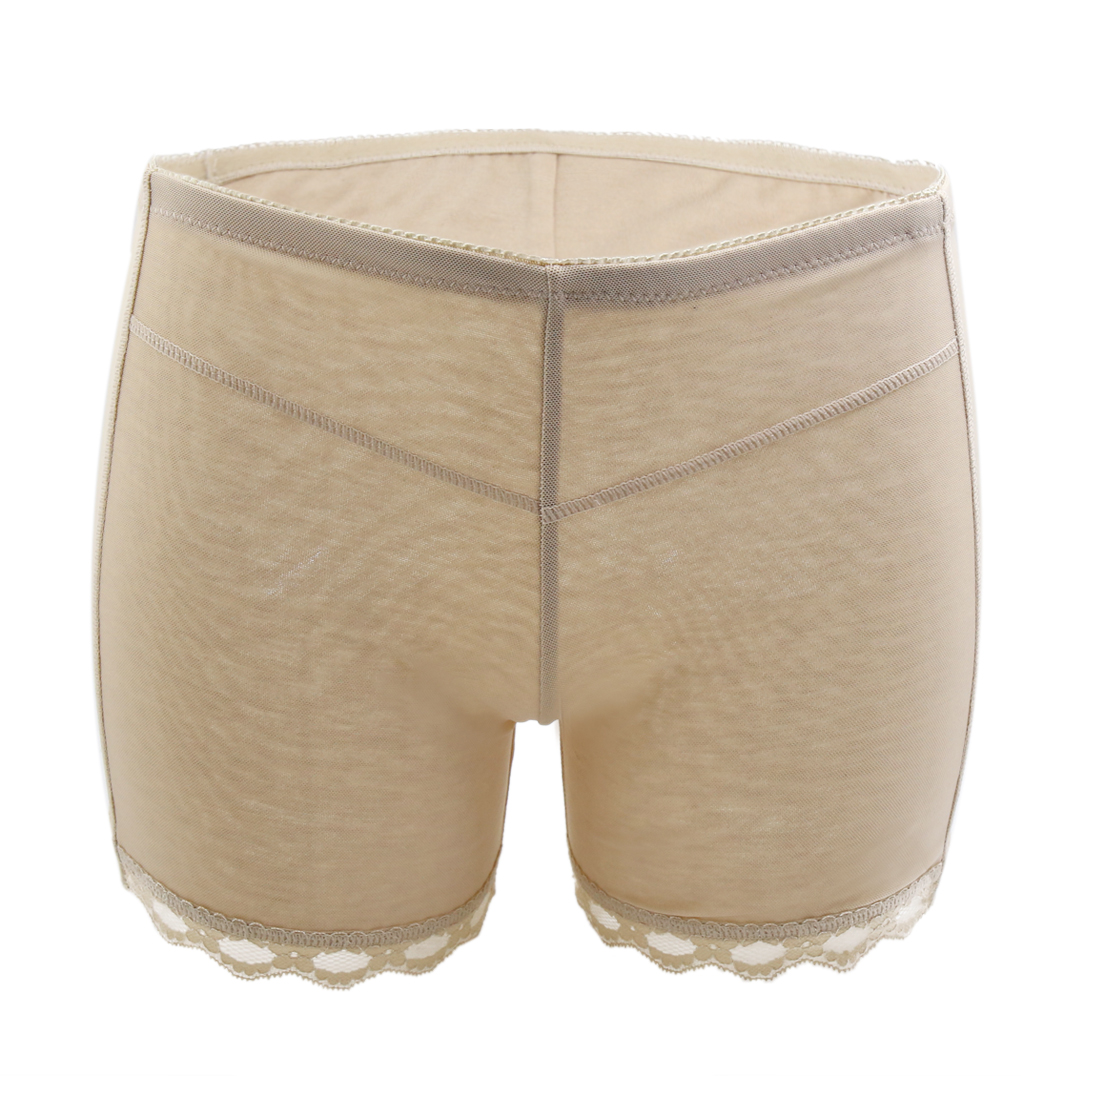 Size M Beige Lace Trim Women Butt Push Up Shaper Panty Tummy Waist Control Shapewear Underwear